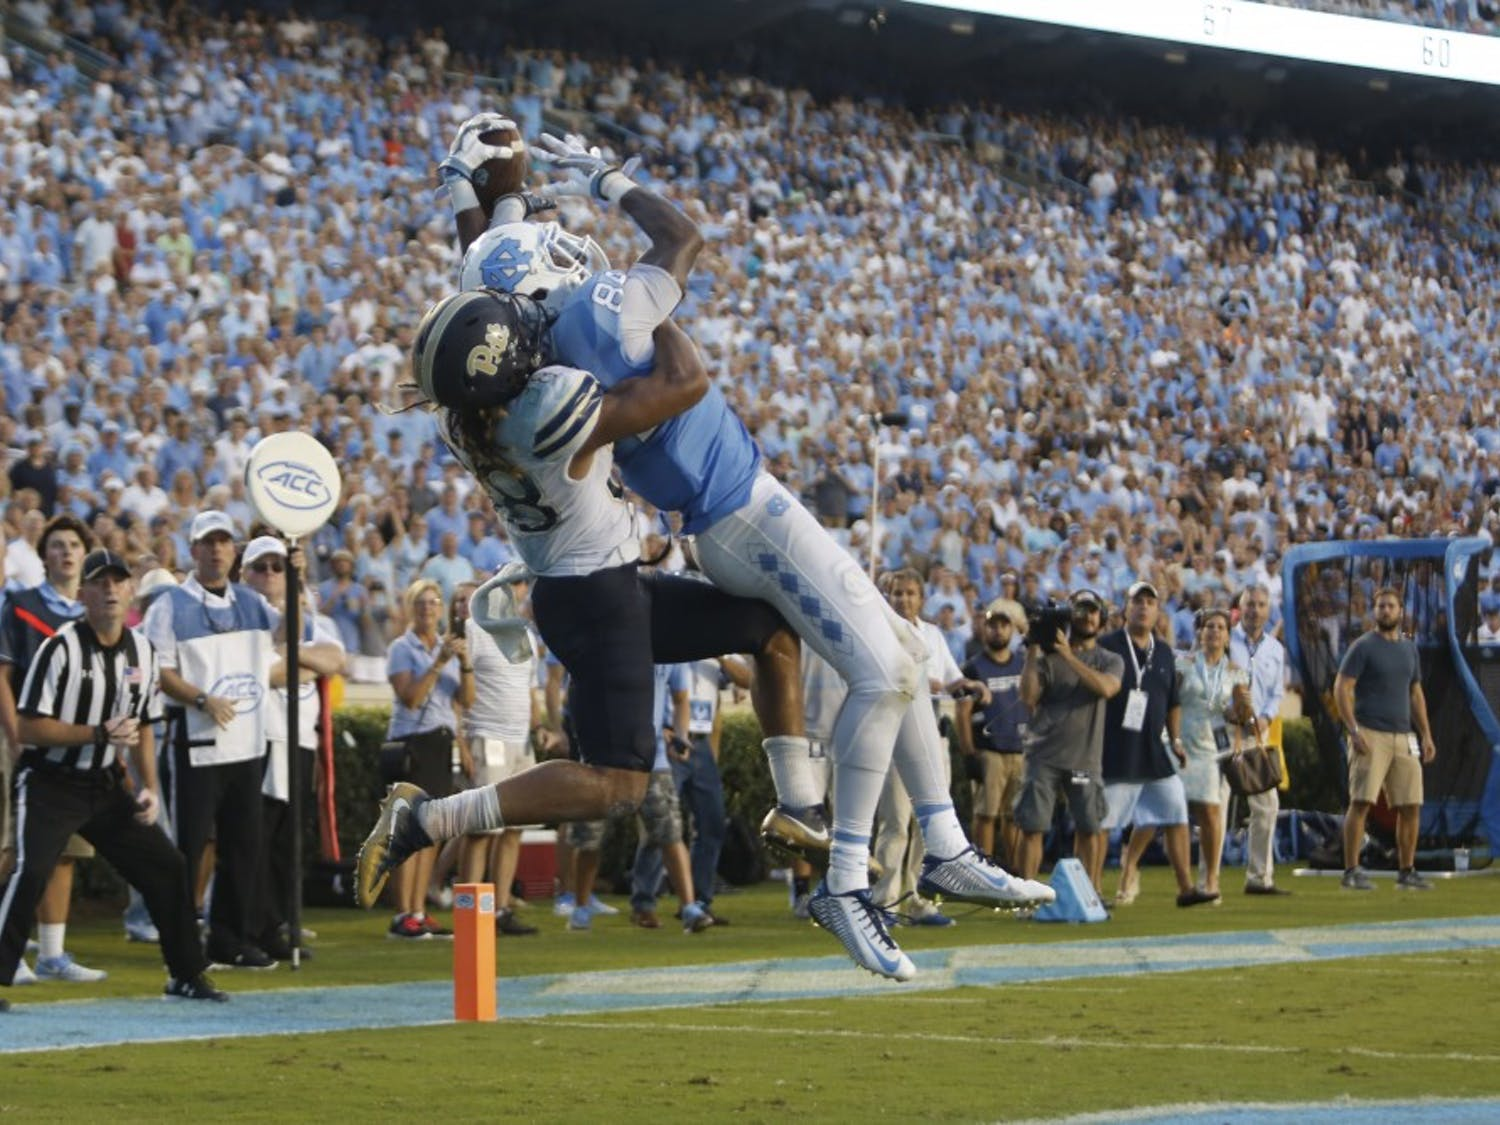 The UNC football team defeated Pitt 37-36 off a touchdown with two seconds remaining on Saturday.